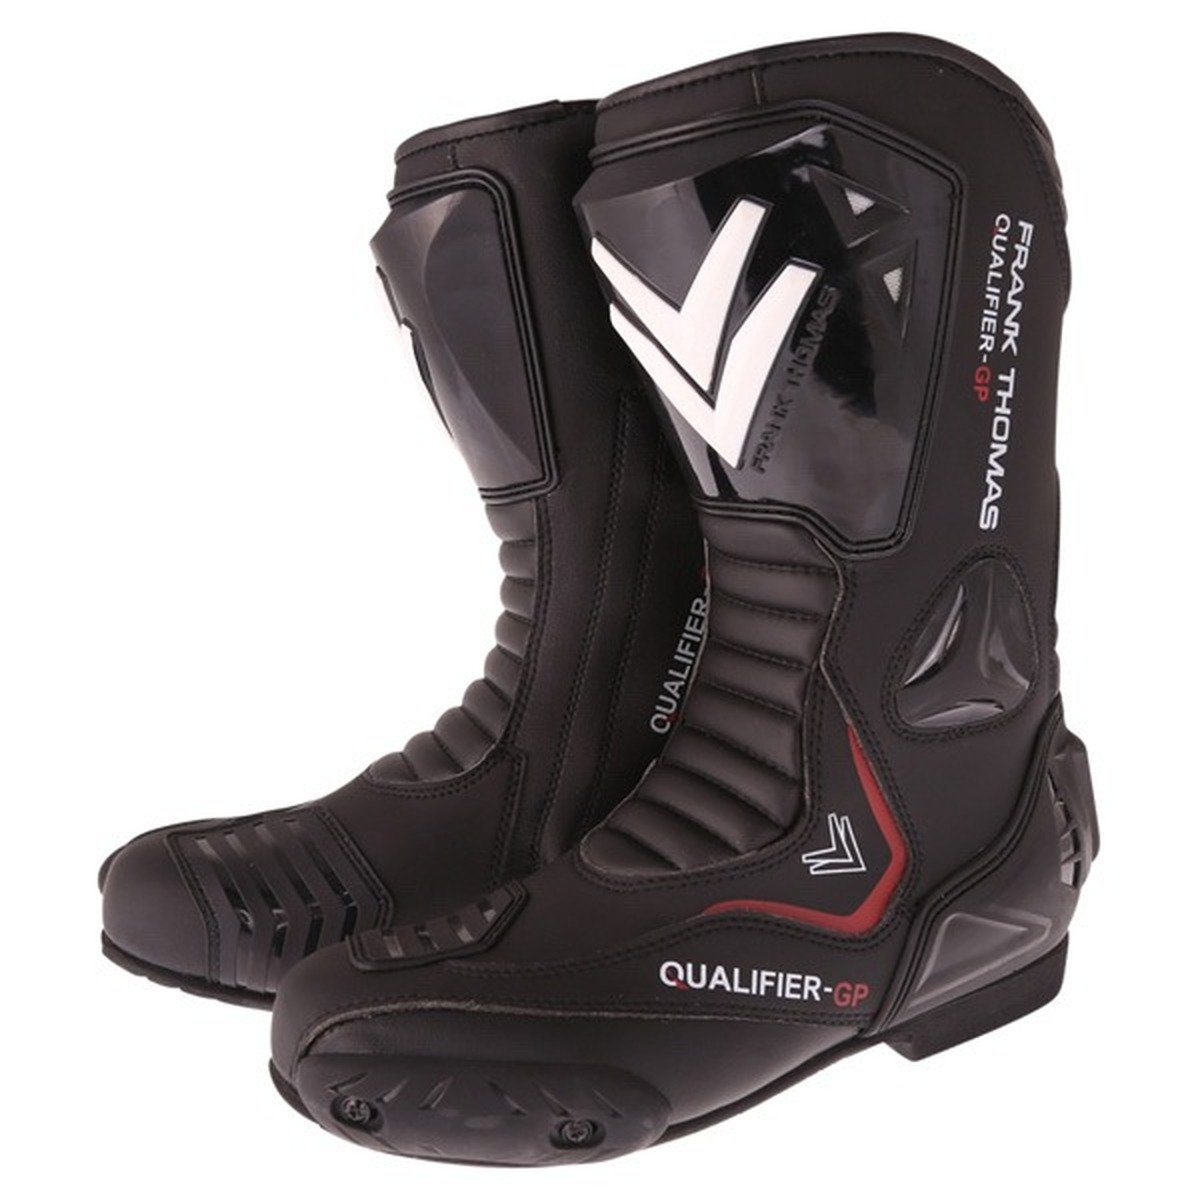 Frank Thomas Qualifier GP Boots in Black